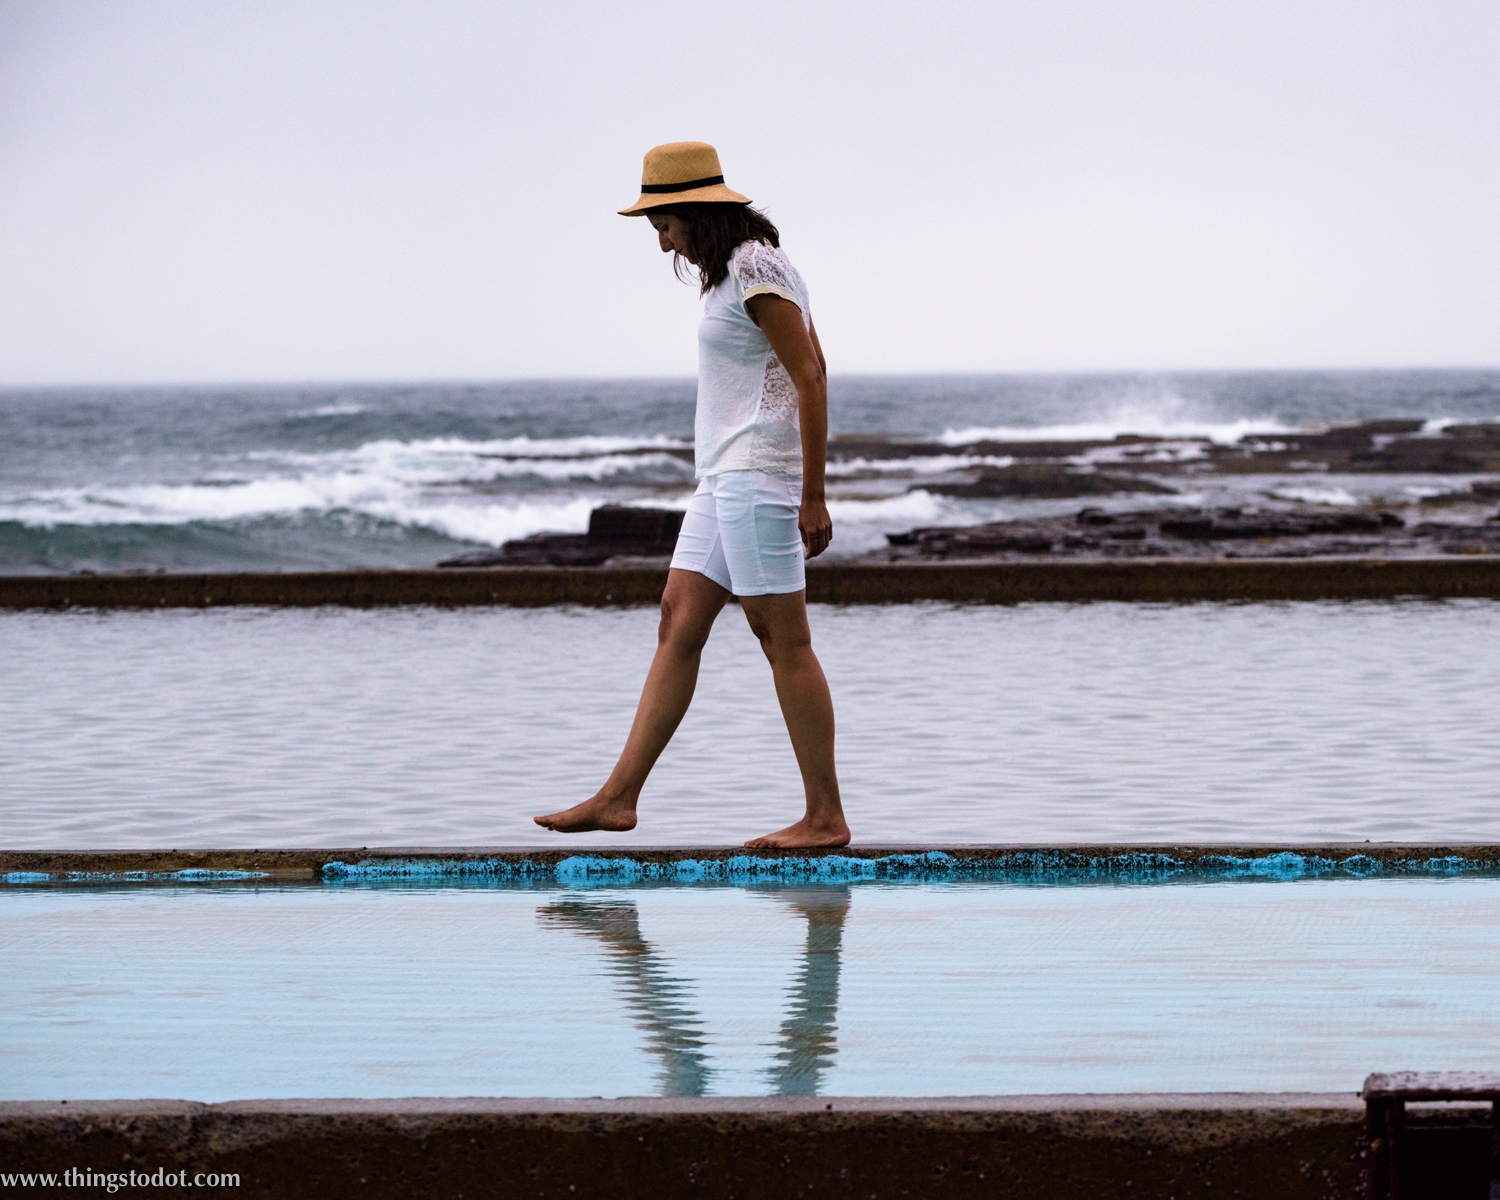 Wombarra Ocean Pool, Wombarra (Wollongong), New South Wales, Australia. Photo: Brad Chilby (http://chilby.com.au). Image©www.thingstodot.com.